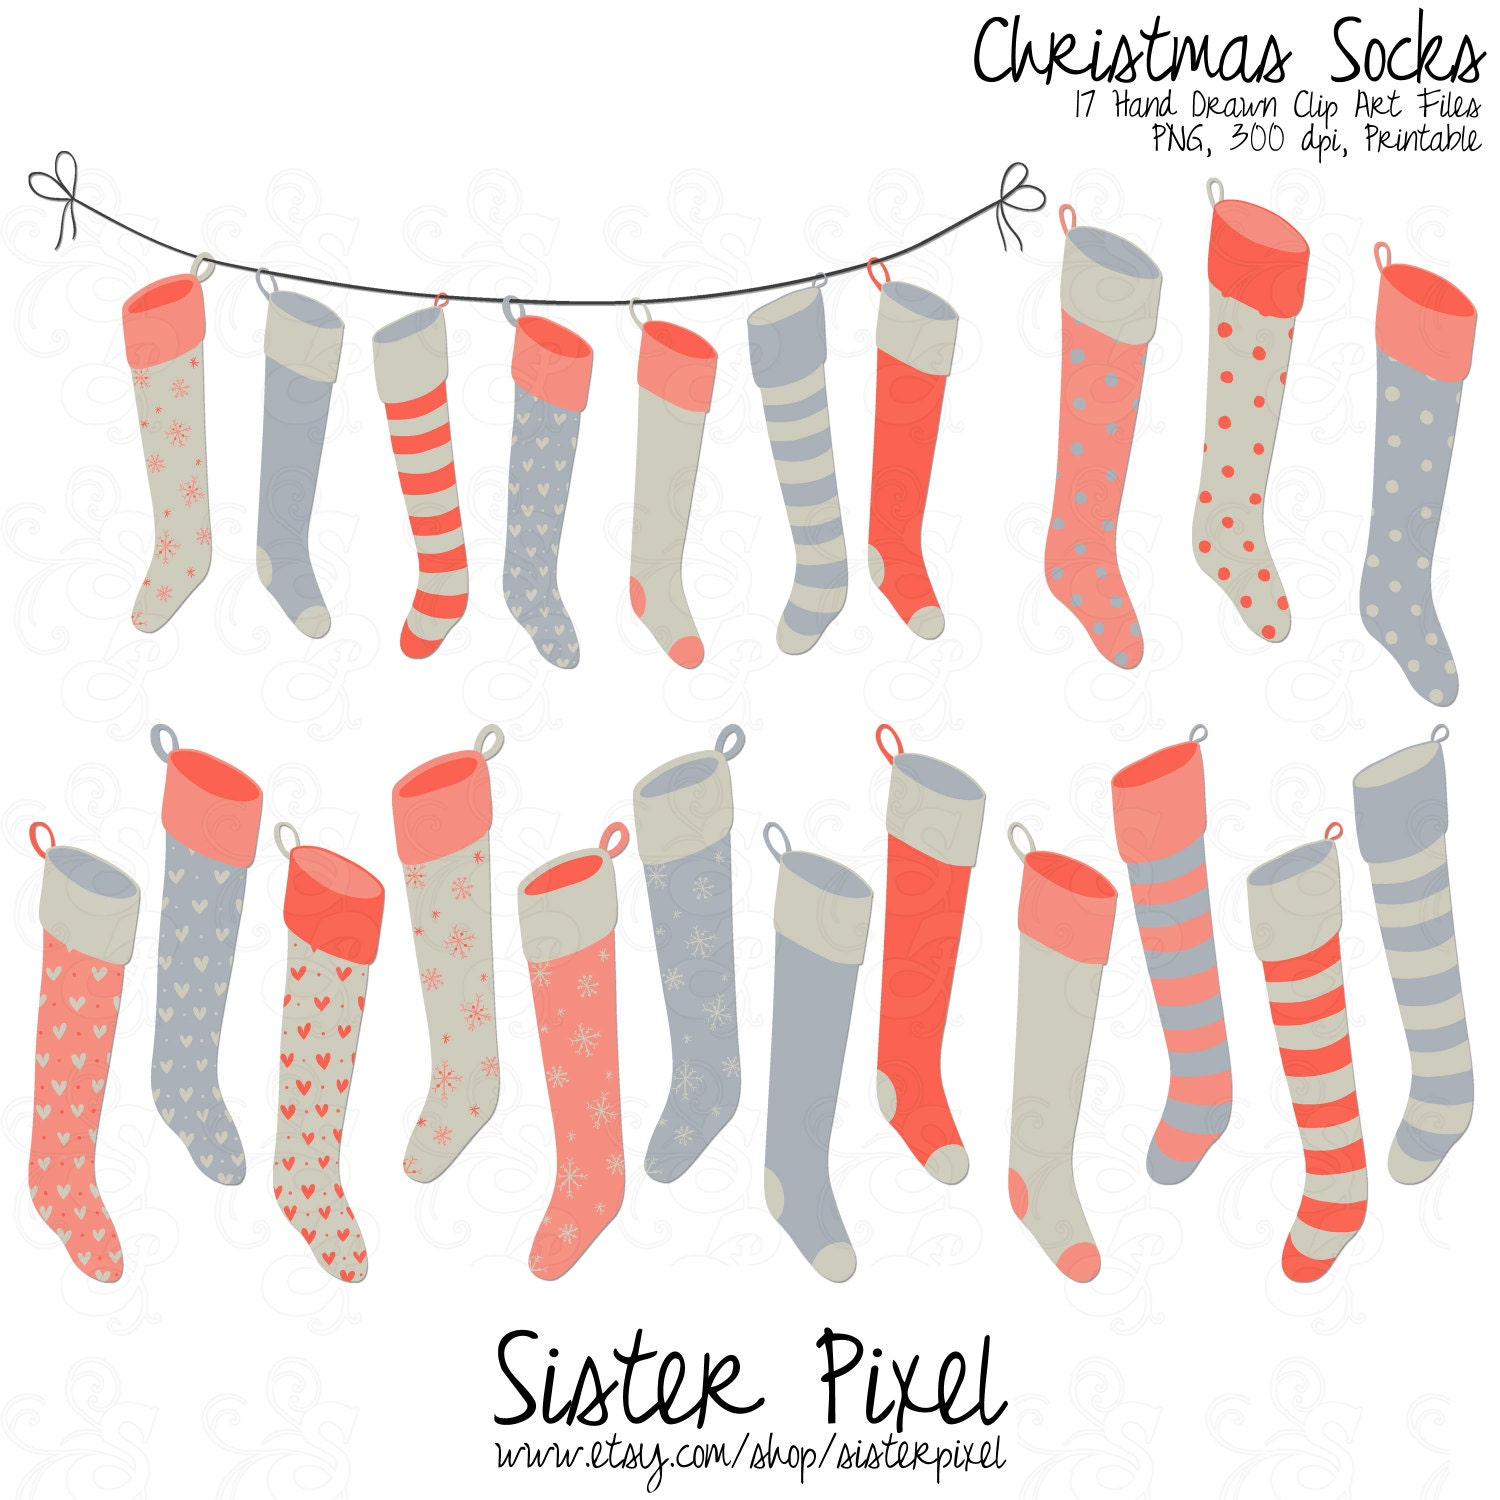 Christmas Stockings Clipart Free Il Fullxfull Fpx